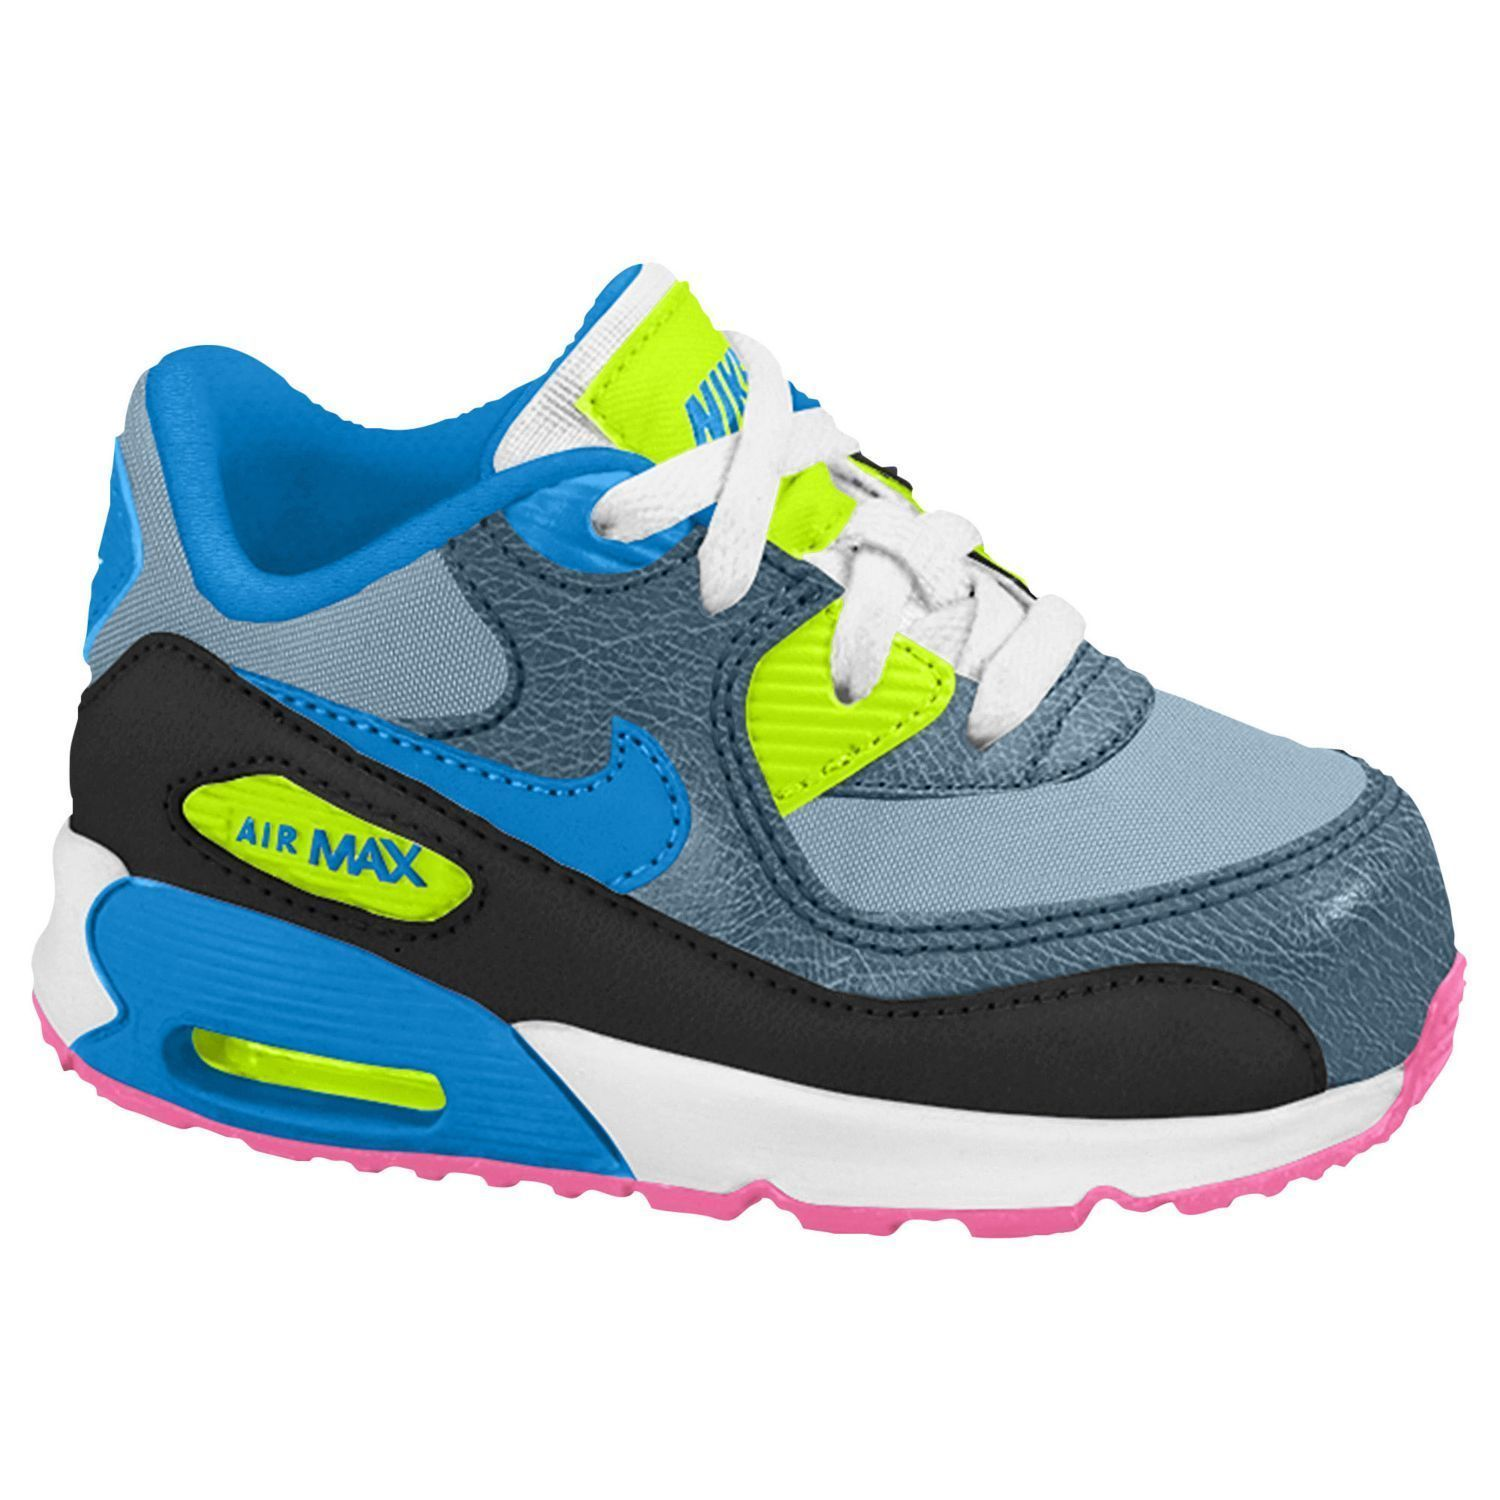 Baby Boys Nike Air Max 90 Running Shoes Toddler Size 4 | eBay